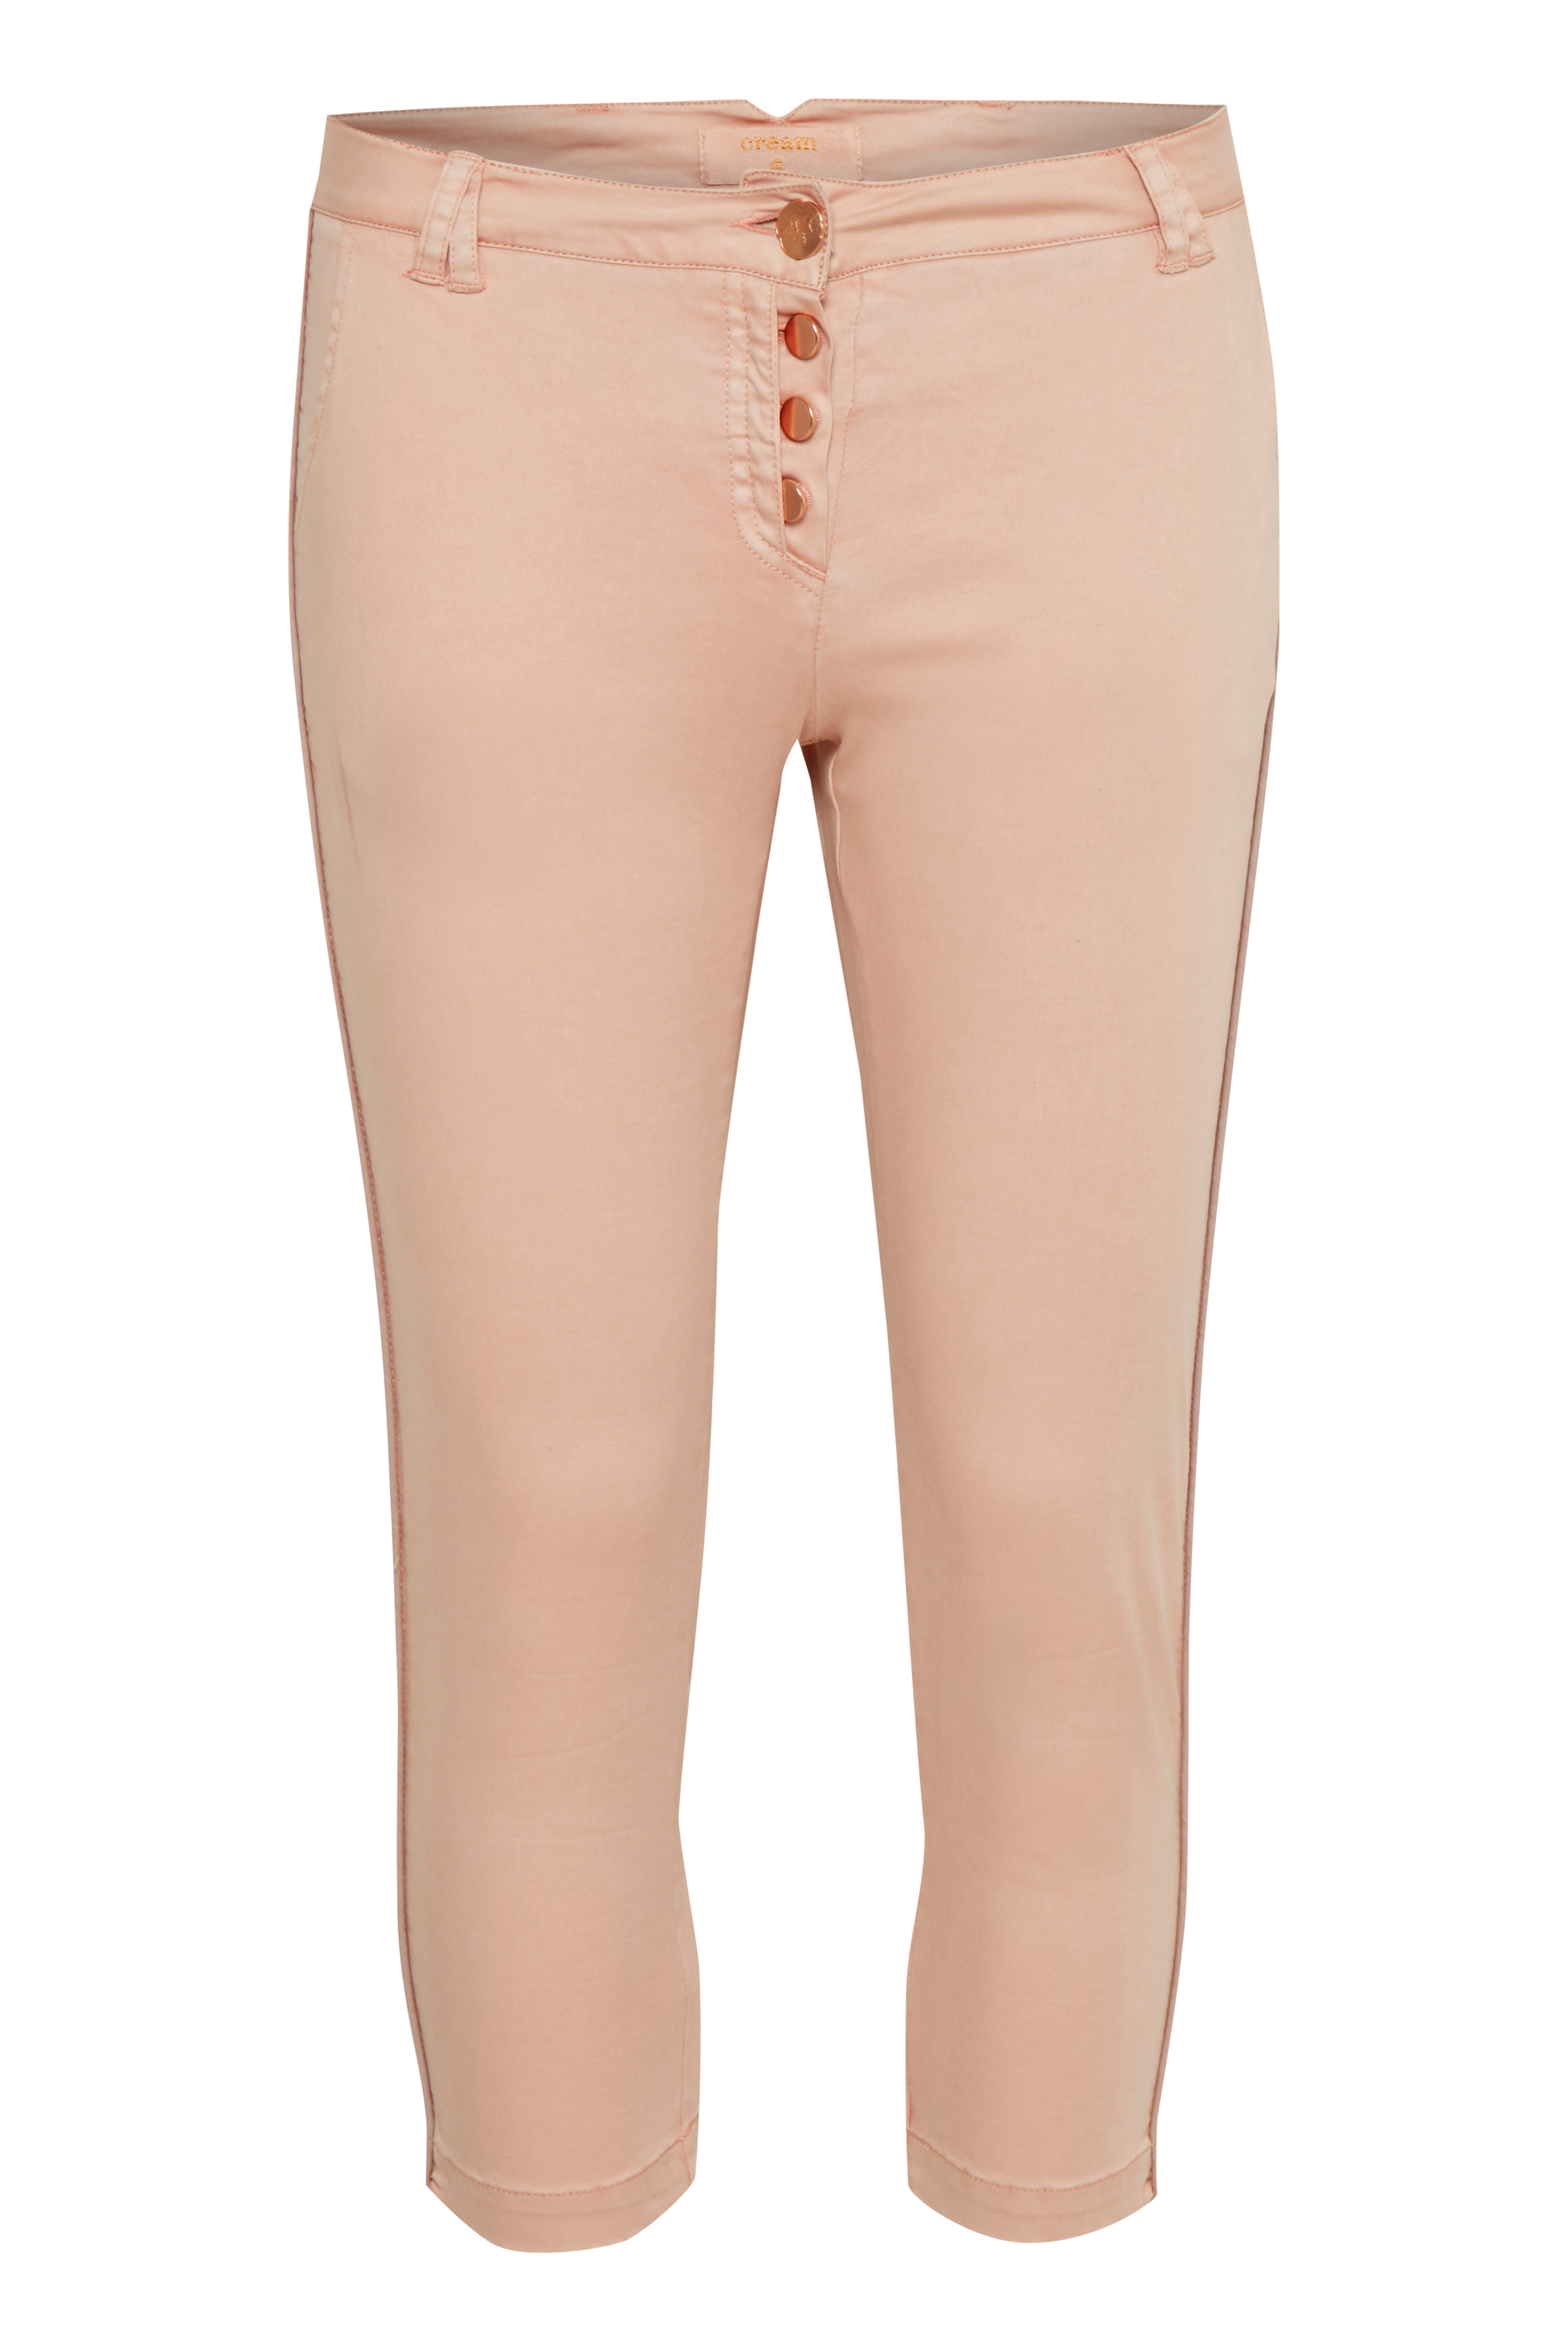 Cream Dame Capribroek - Misty roze